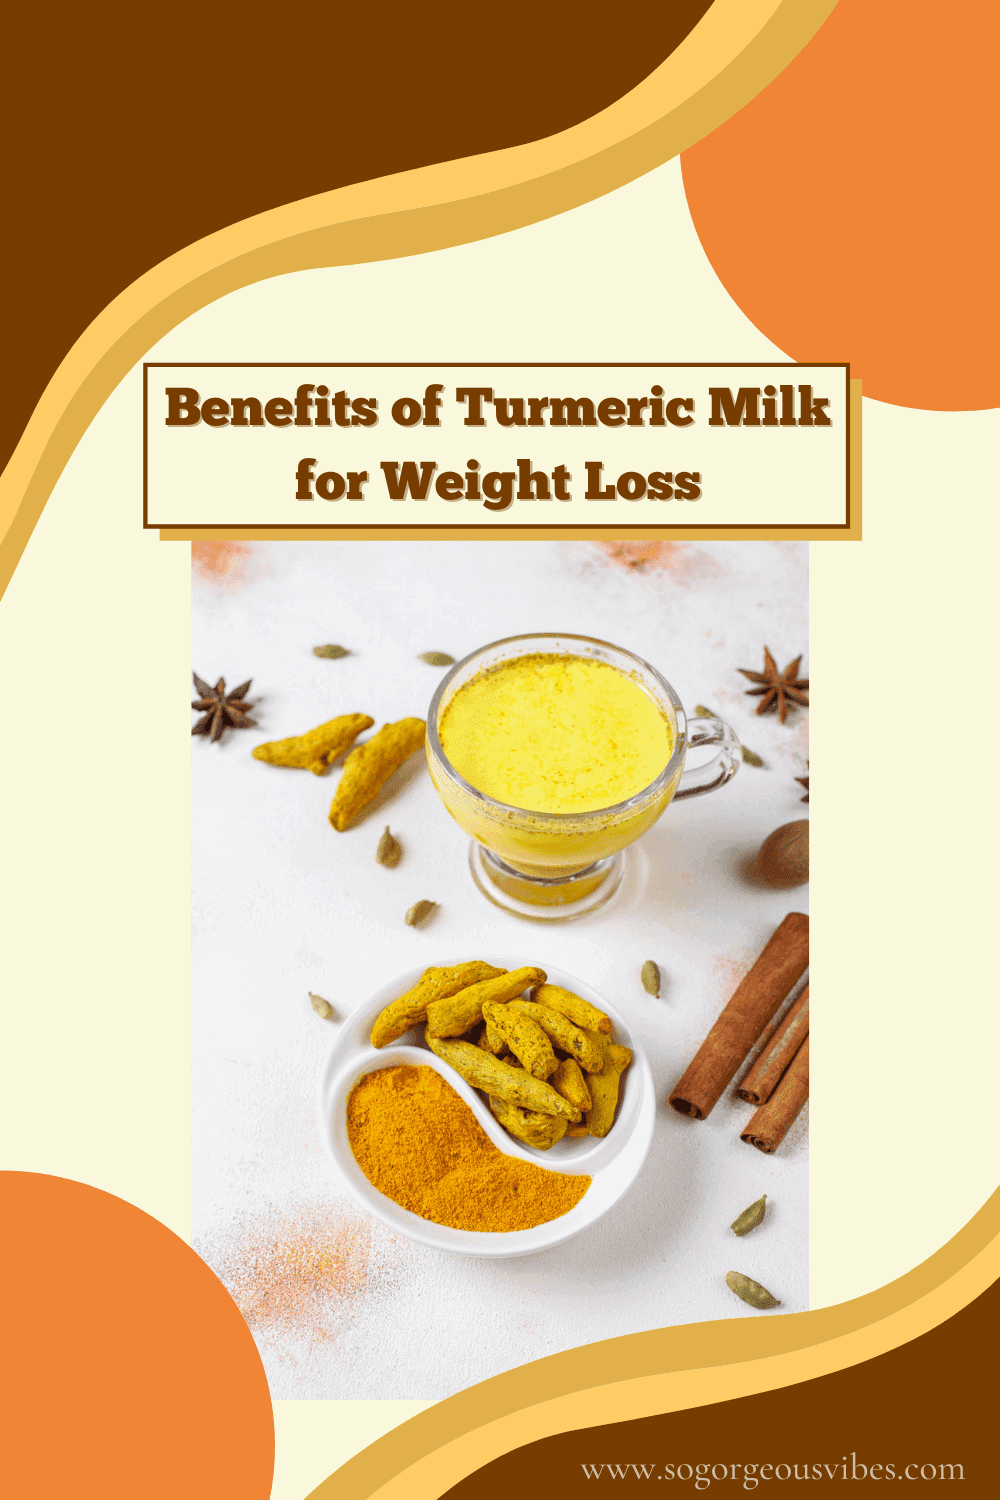 Benefits of Turmeric Milk for Weight Loss